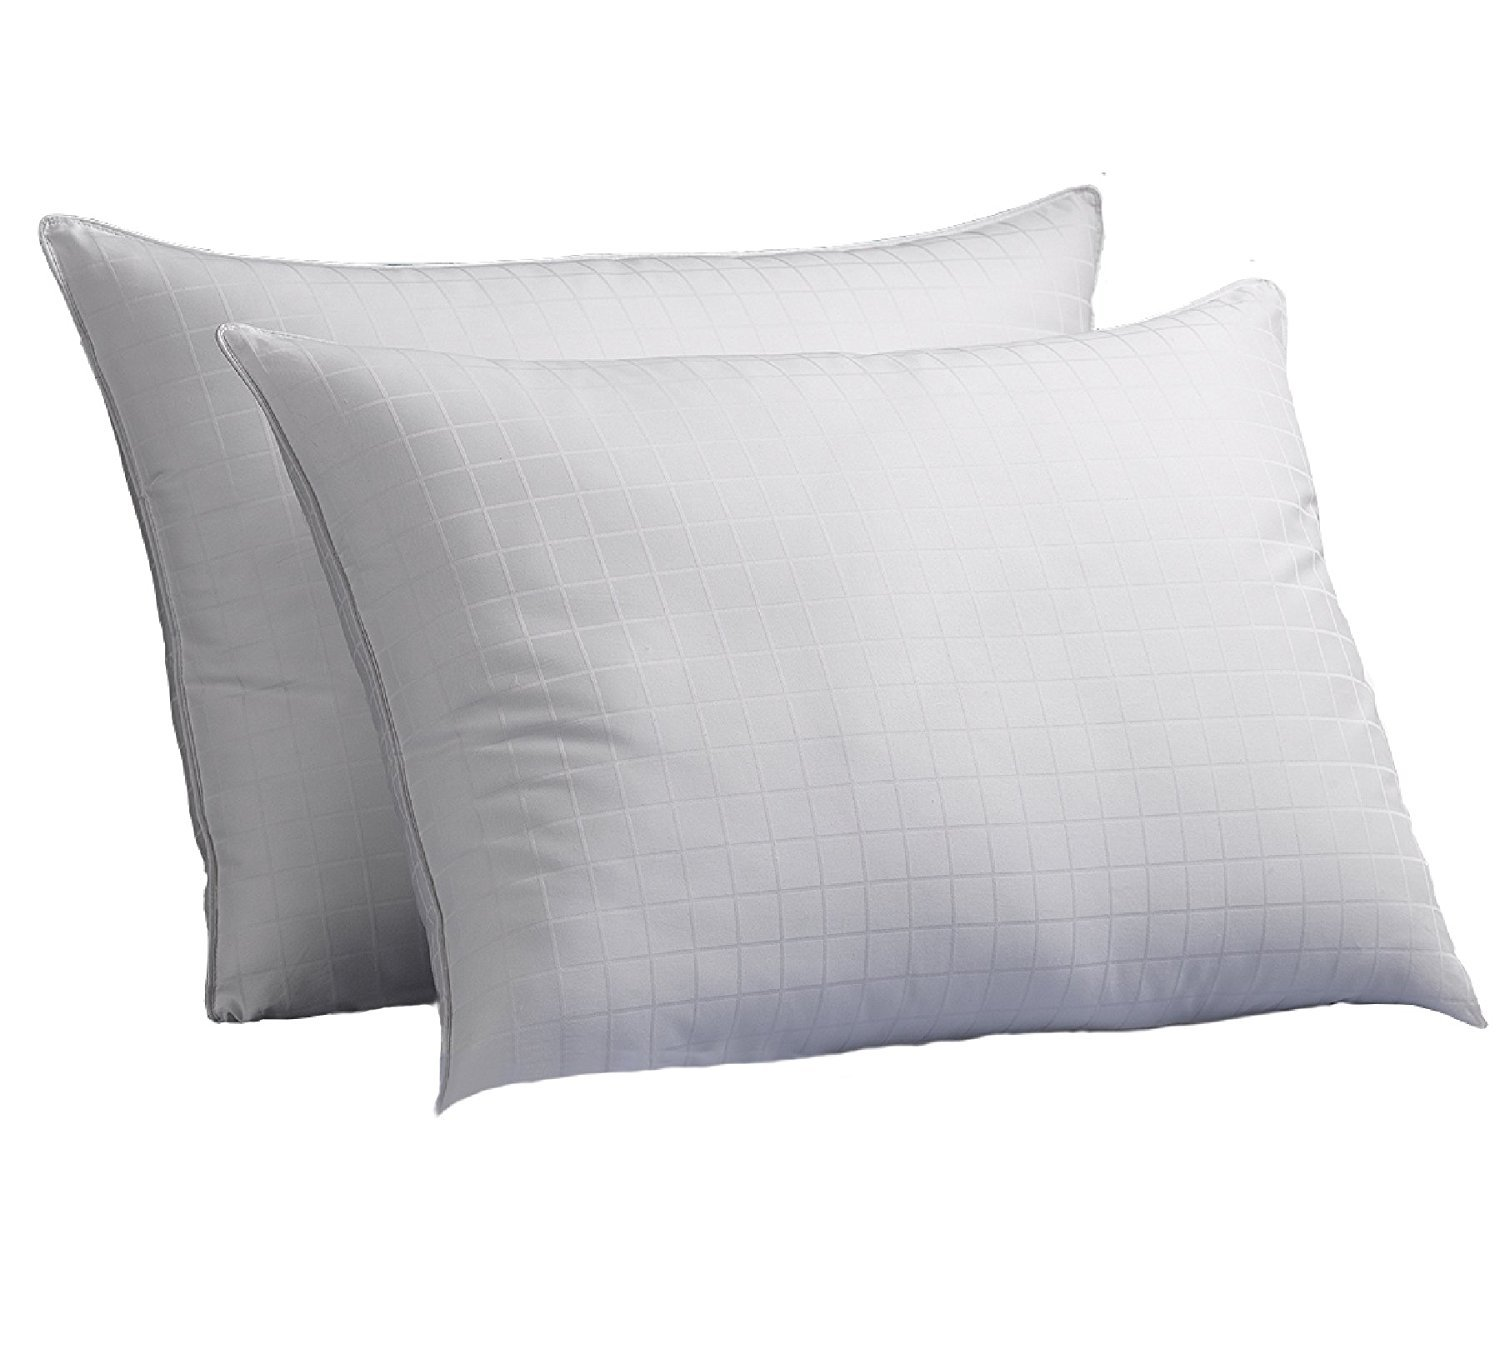 Luxury Plush Down-Alternative Hotel Luxe Pillows 2-Pack, King Size, Gel-Fiber Filled Pillows - Hypoallergenic, 100% Cotton Shell with Windowpane Pattern - Firm Density, Ideal for Side/Back Sleepers